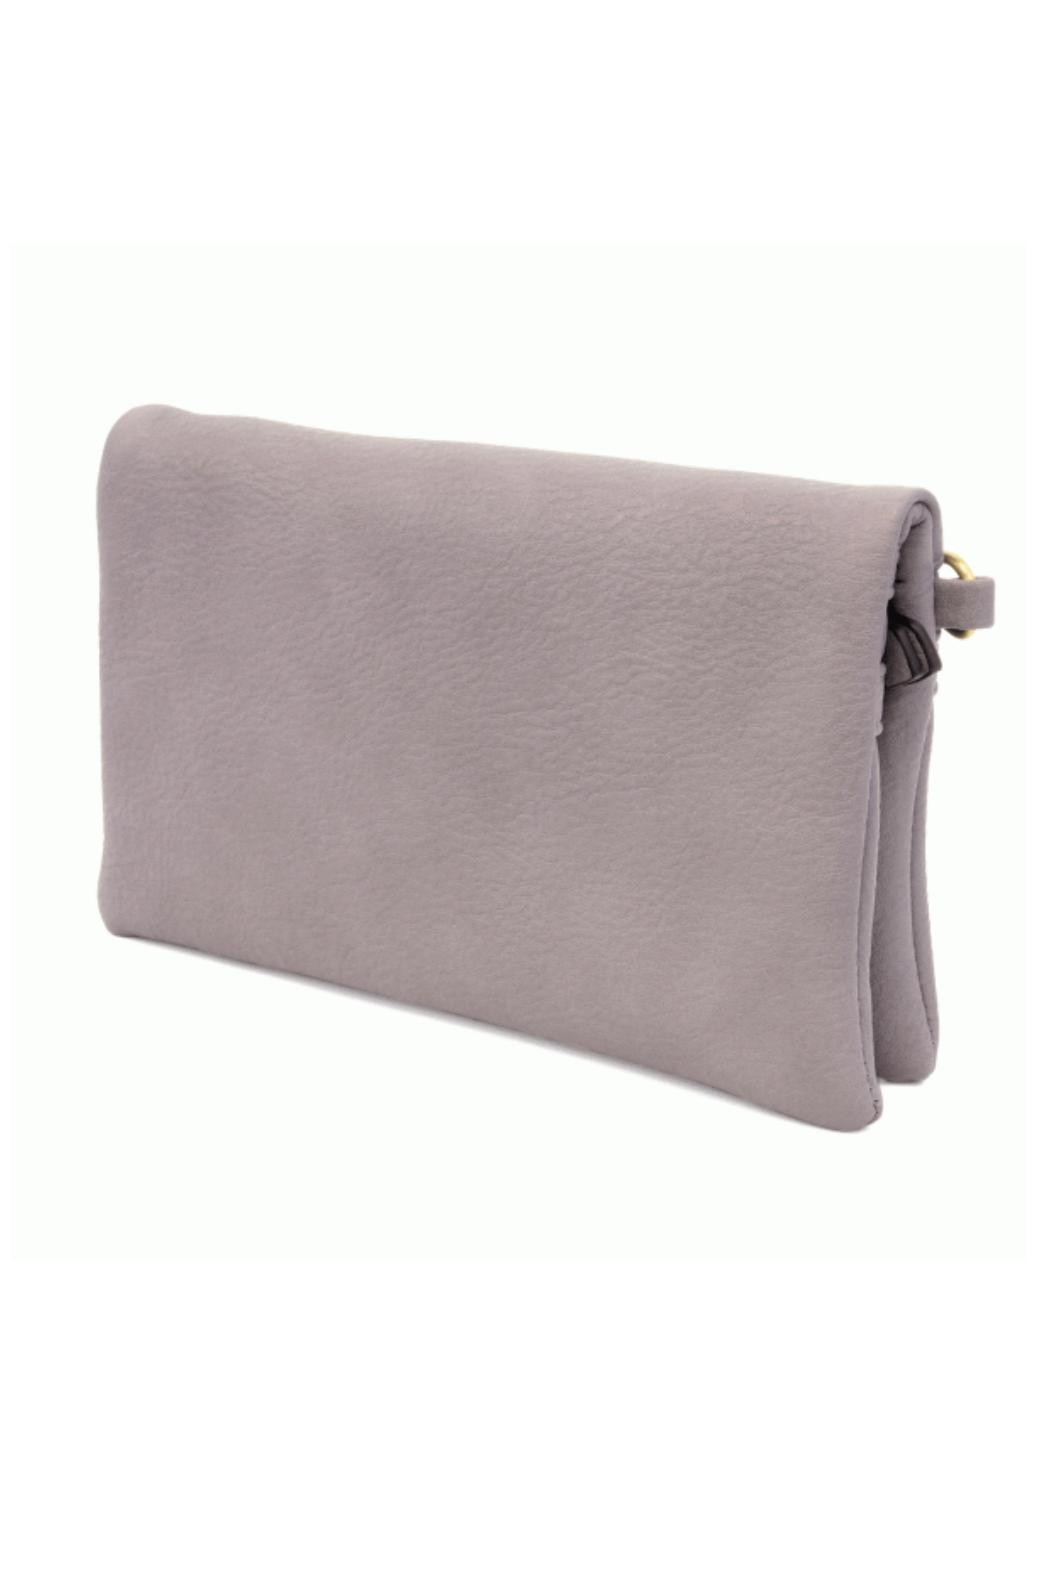 Joy Accessories Kate Crossbody - Wisteria - Front Full Image